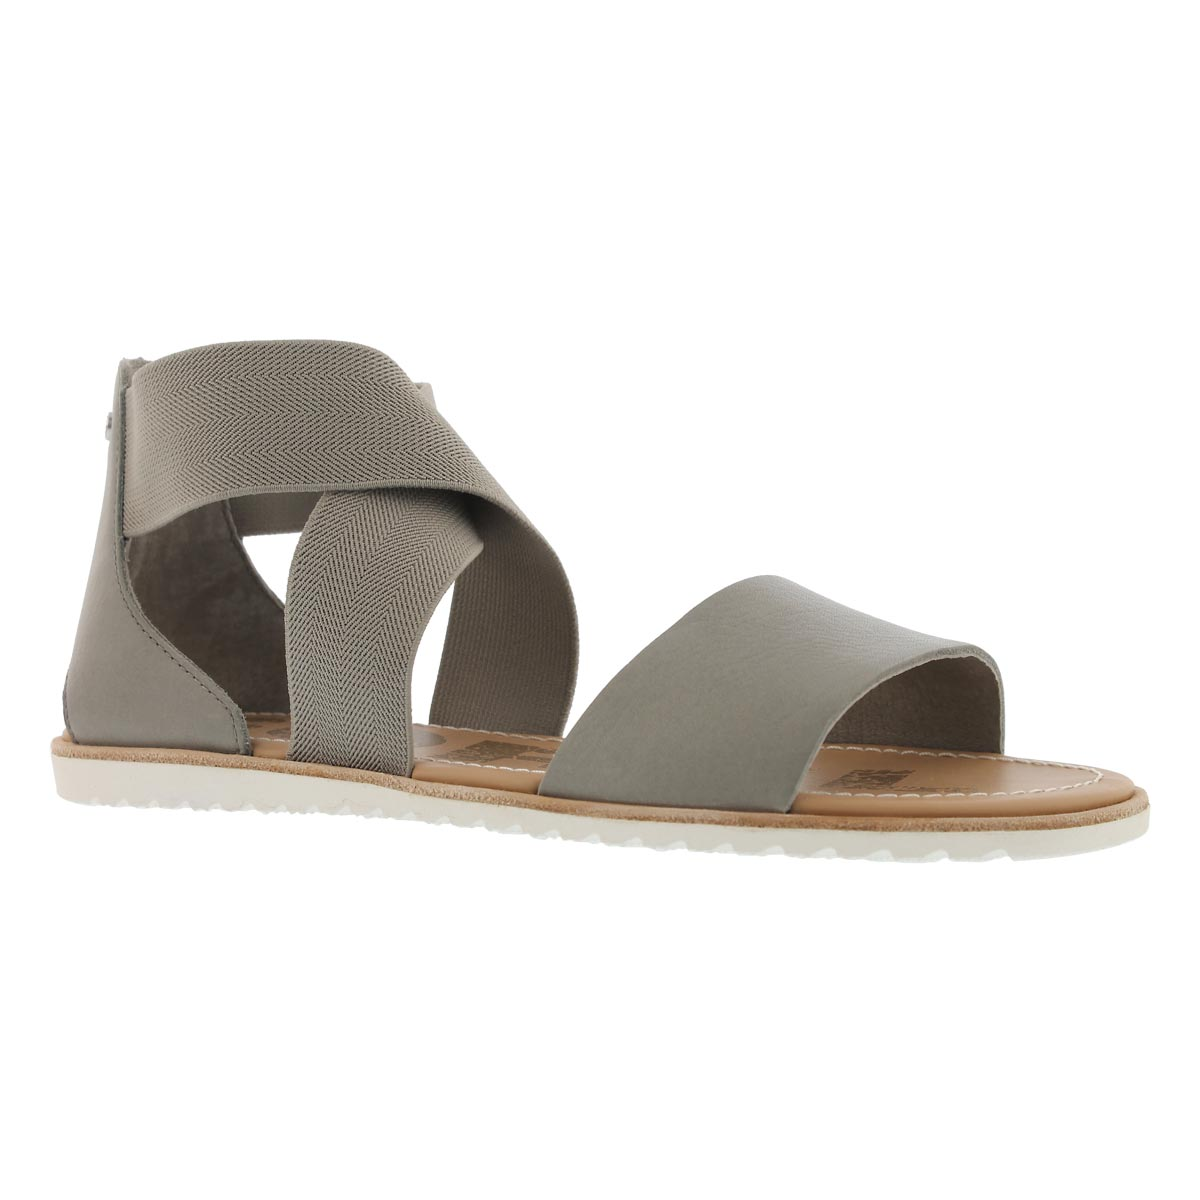 Women's ELLA kettle casual sandals